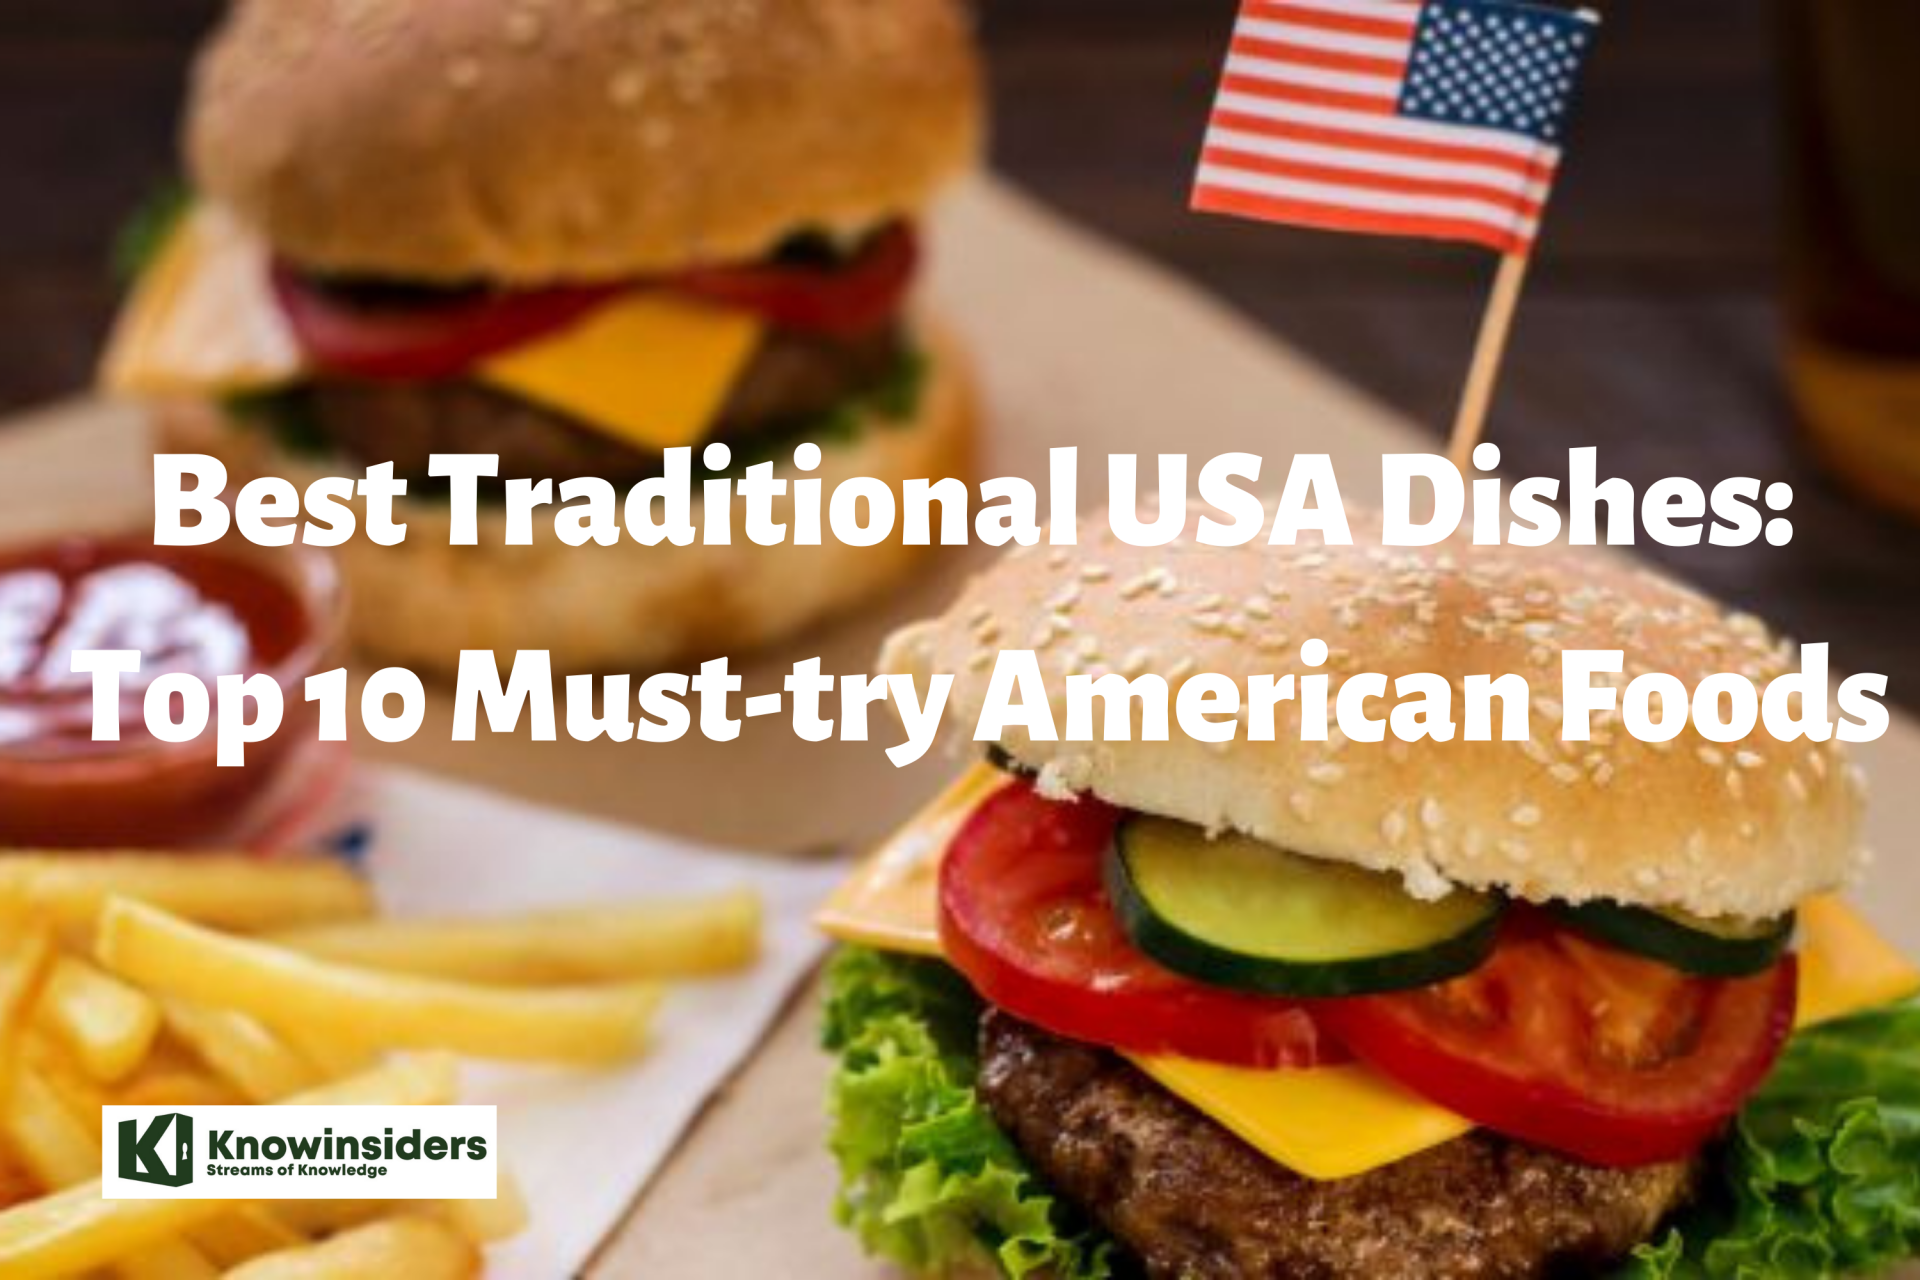 Best Traditional USA Dishes: Top 10 Must-try American Foods